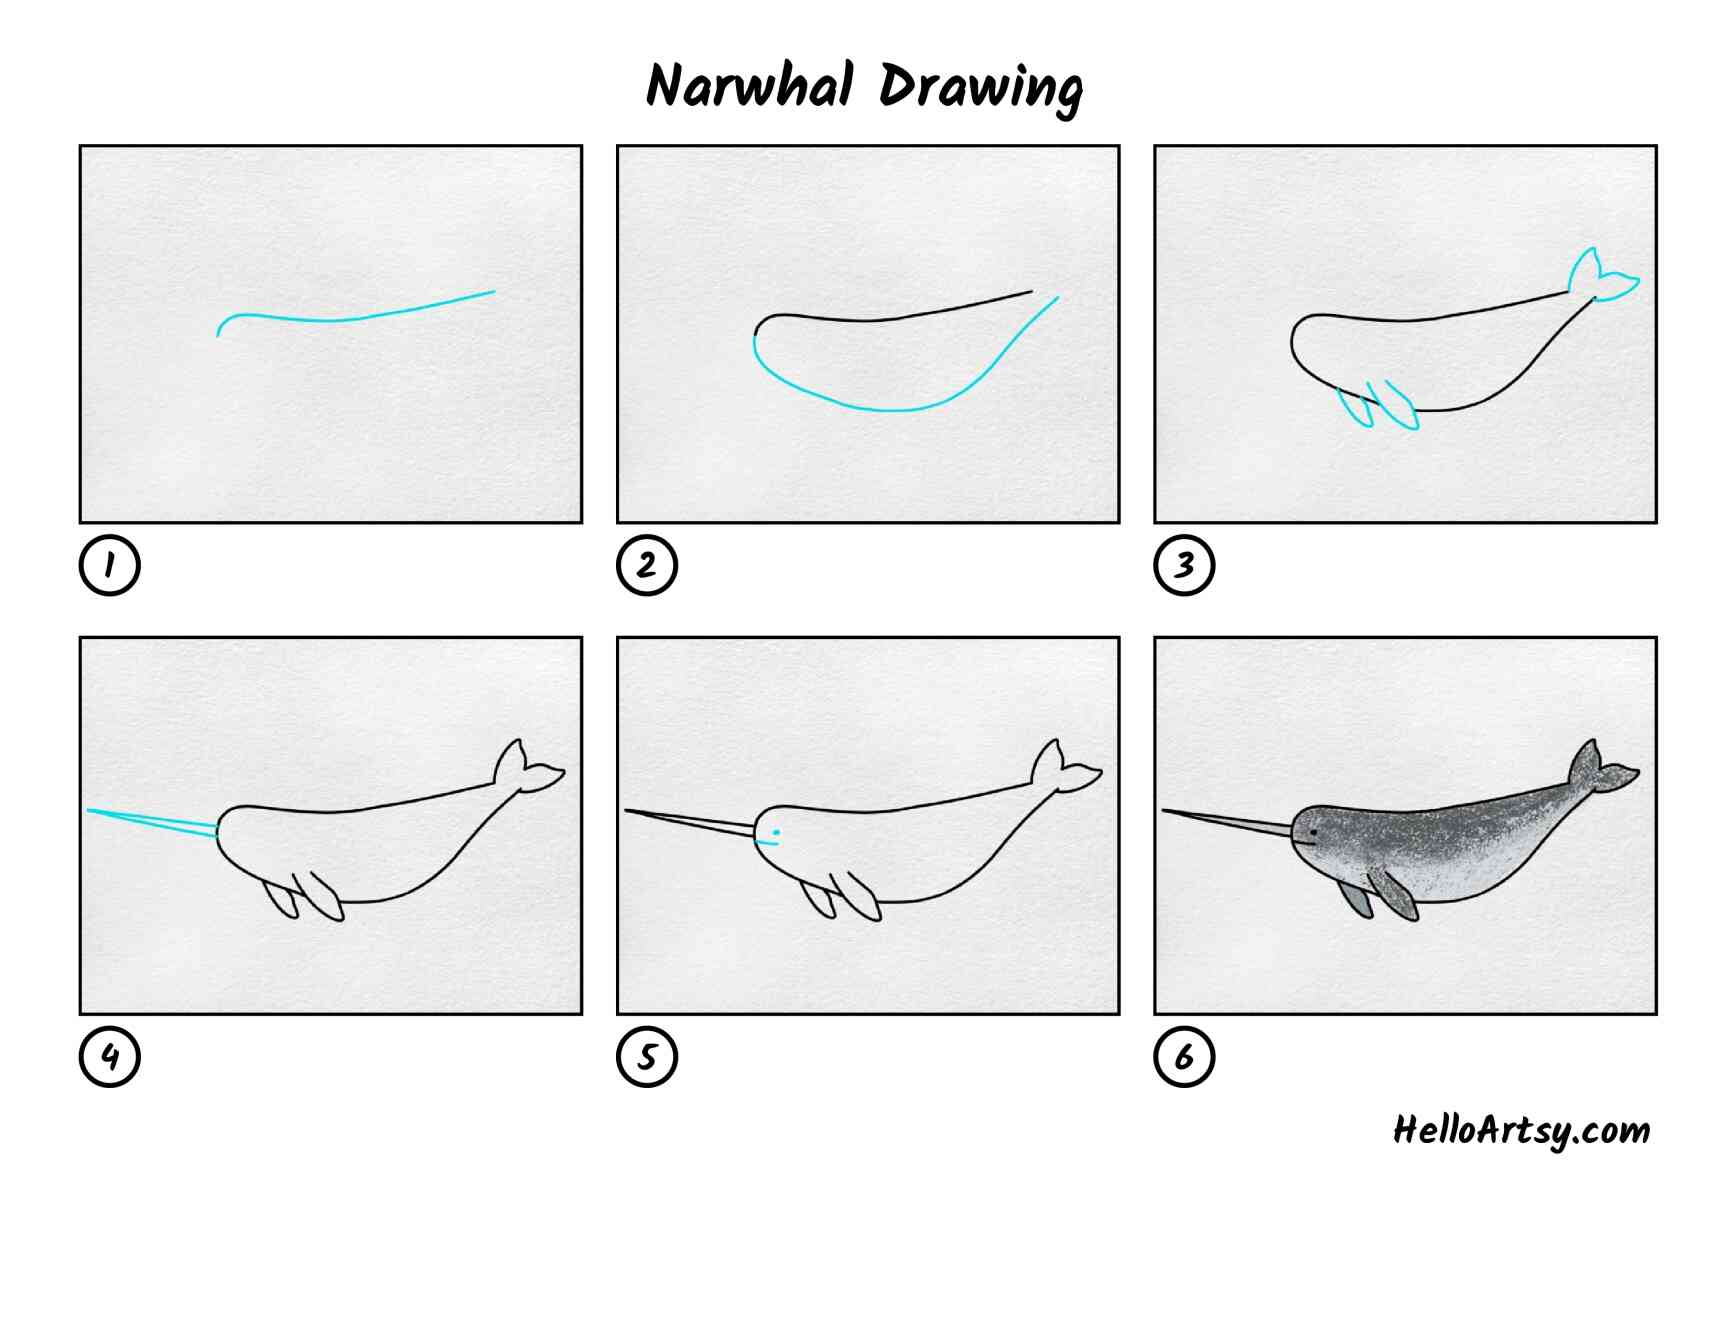 Narwhal Drawing: All Steps